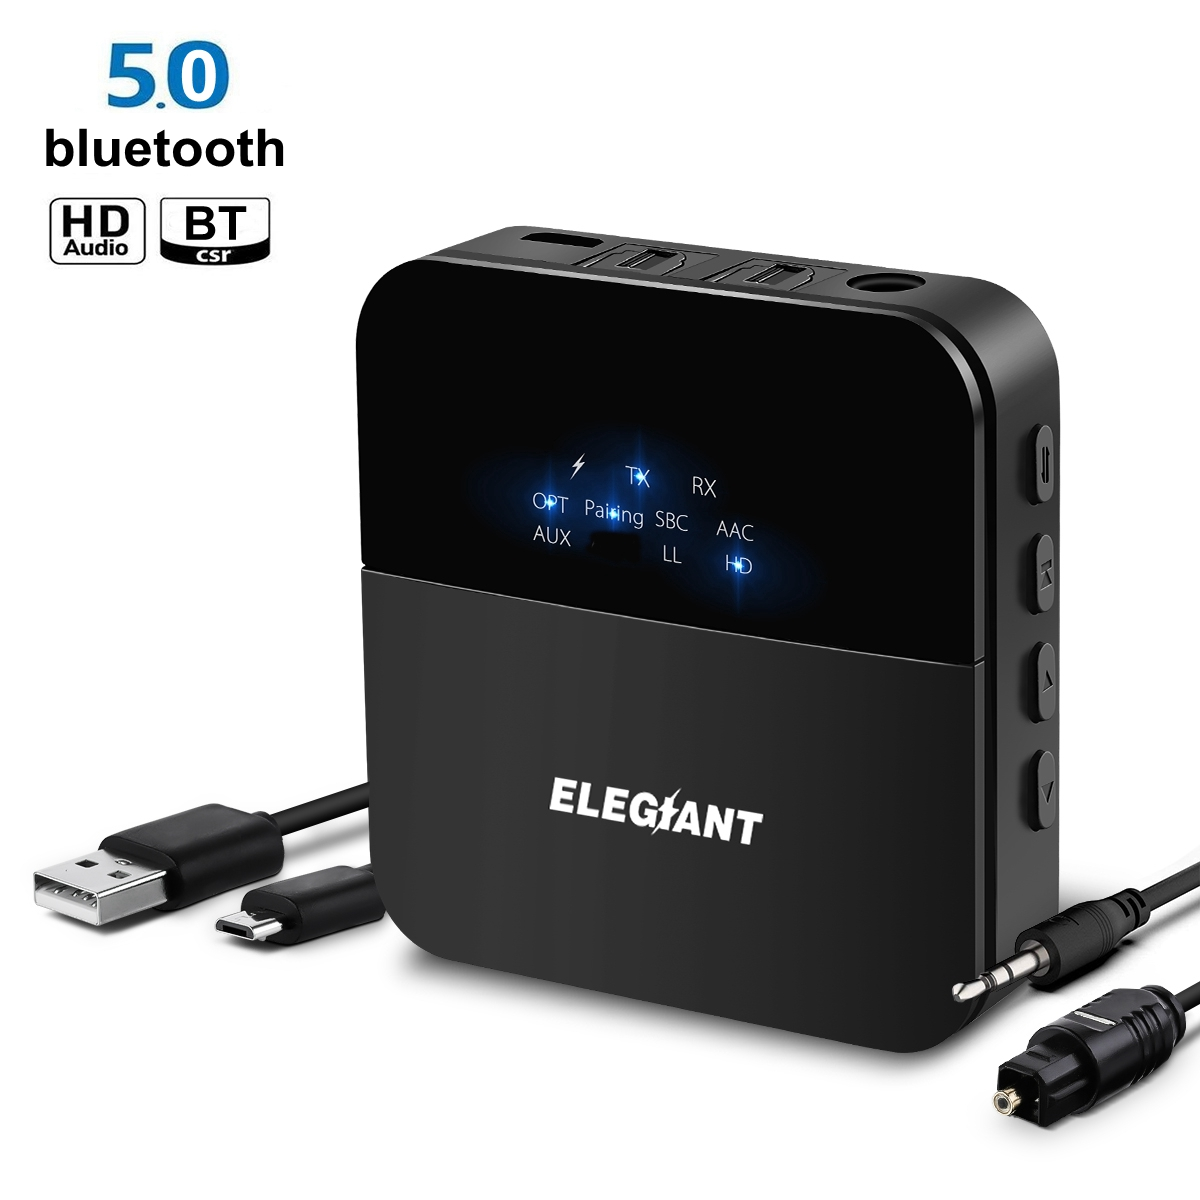 ELEGIANT 3.5mm 2RCA HD Bluetooth 5.0 Audio Transmitter Receiver Wireless Adapter / AUX / LL / HiFi For Headphone Car